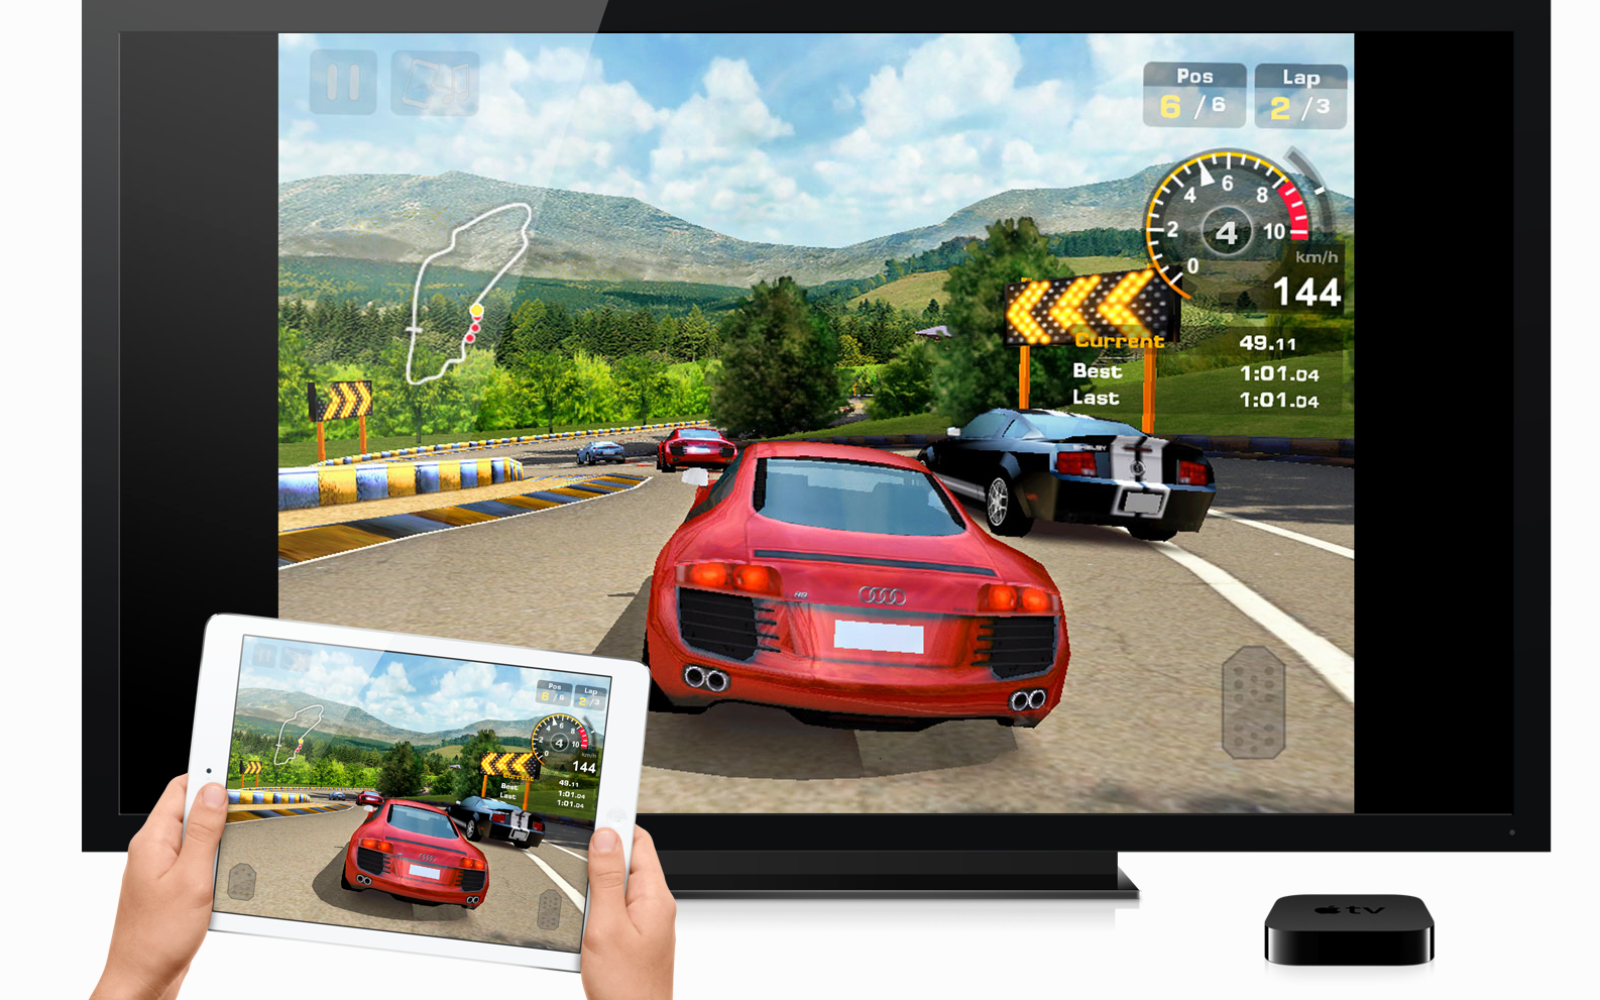 Sources say new Apple TV box likely coming soon, App/Game Store possible